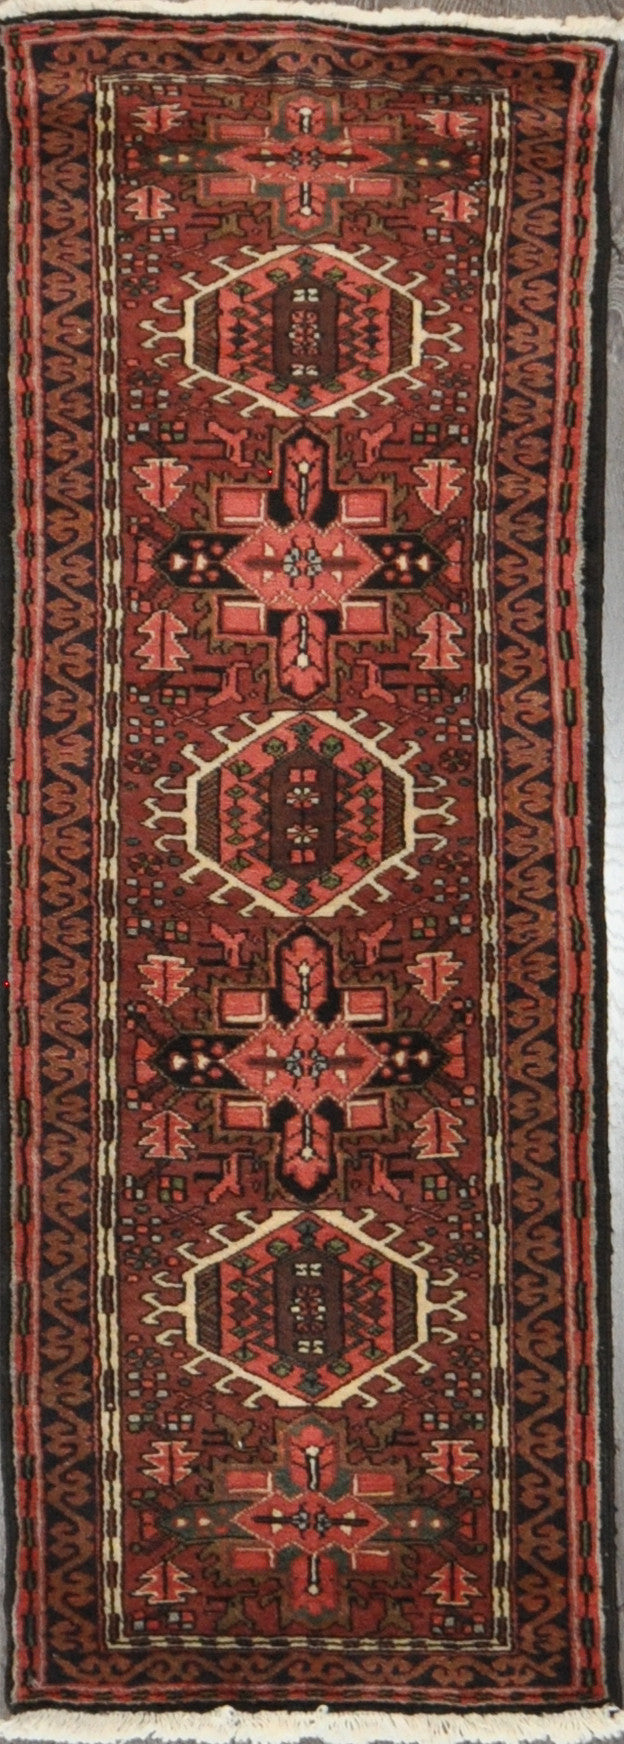 2.3x6.4 Persian heriz runner #17986